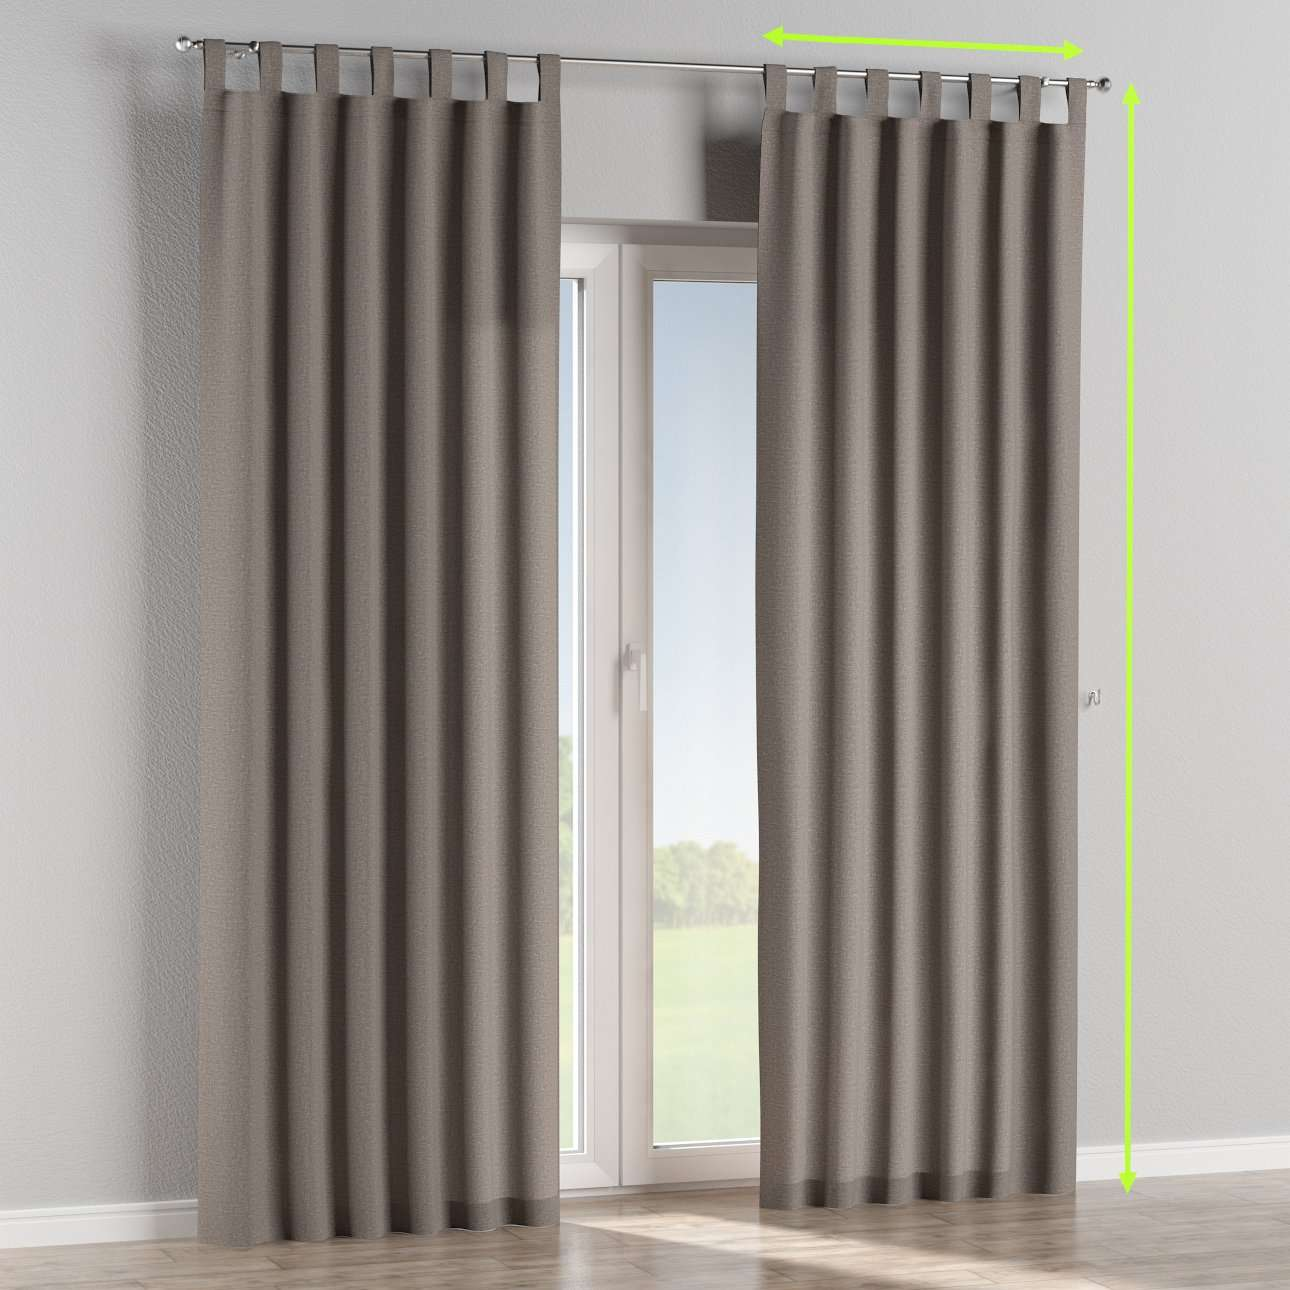 Tab top curtains in collection Edinburgh, fabric: 115-81